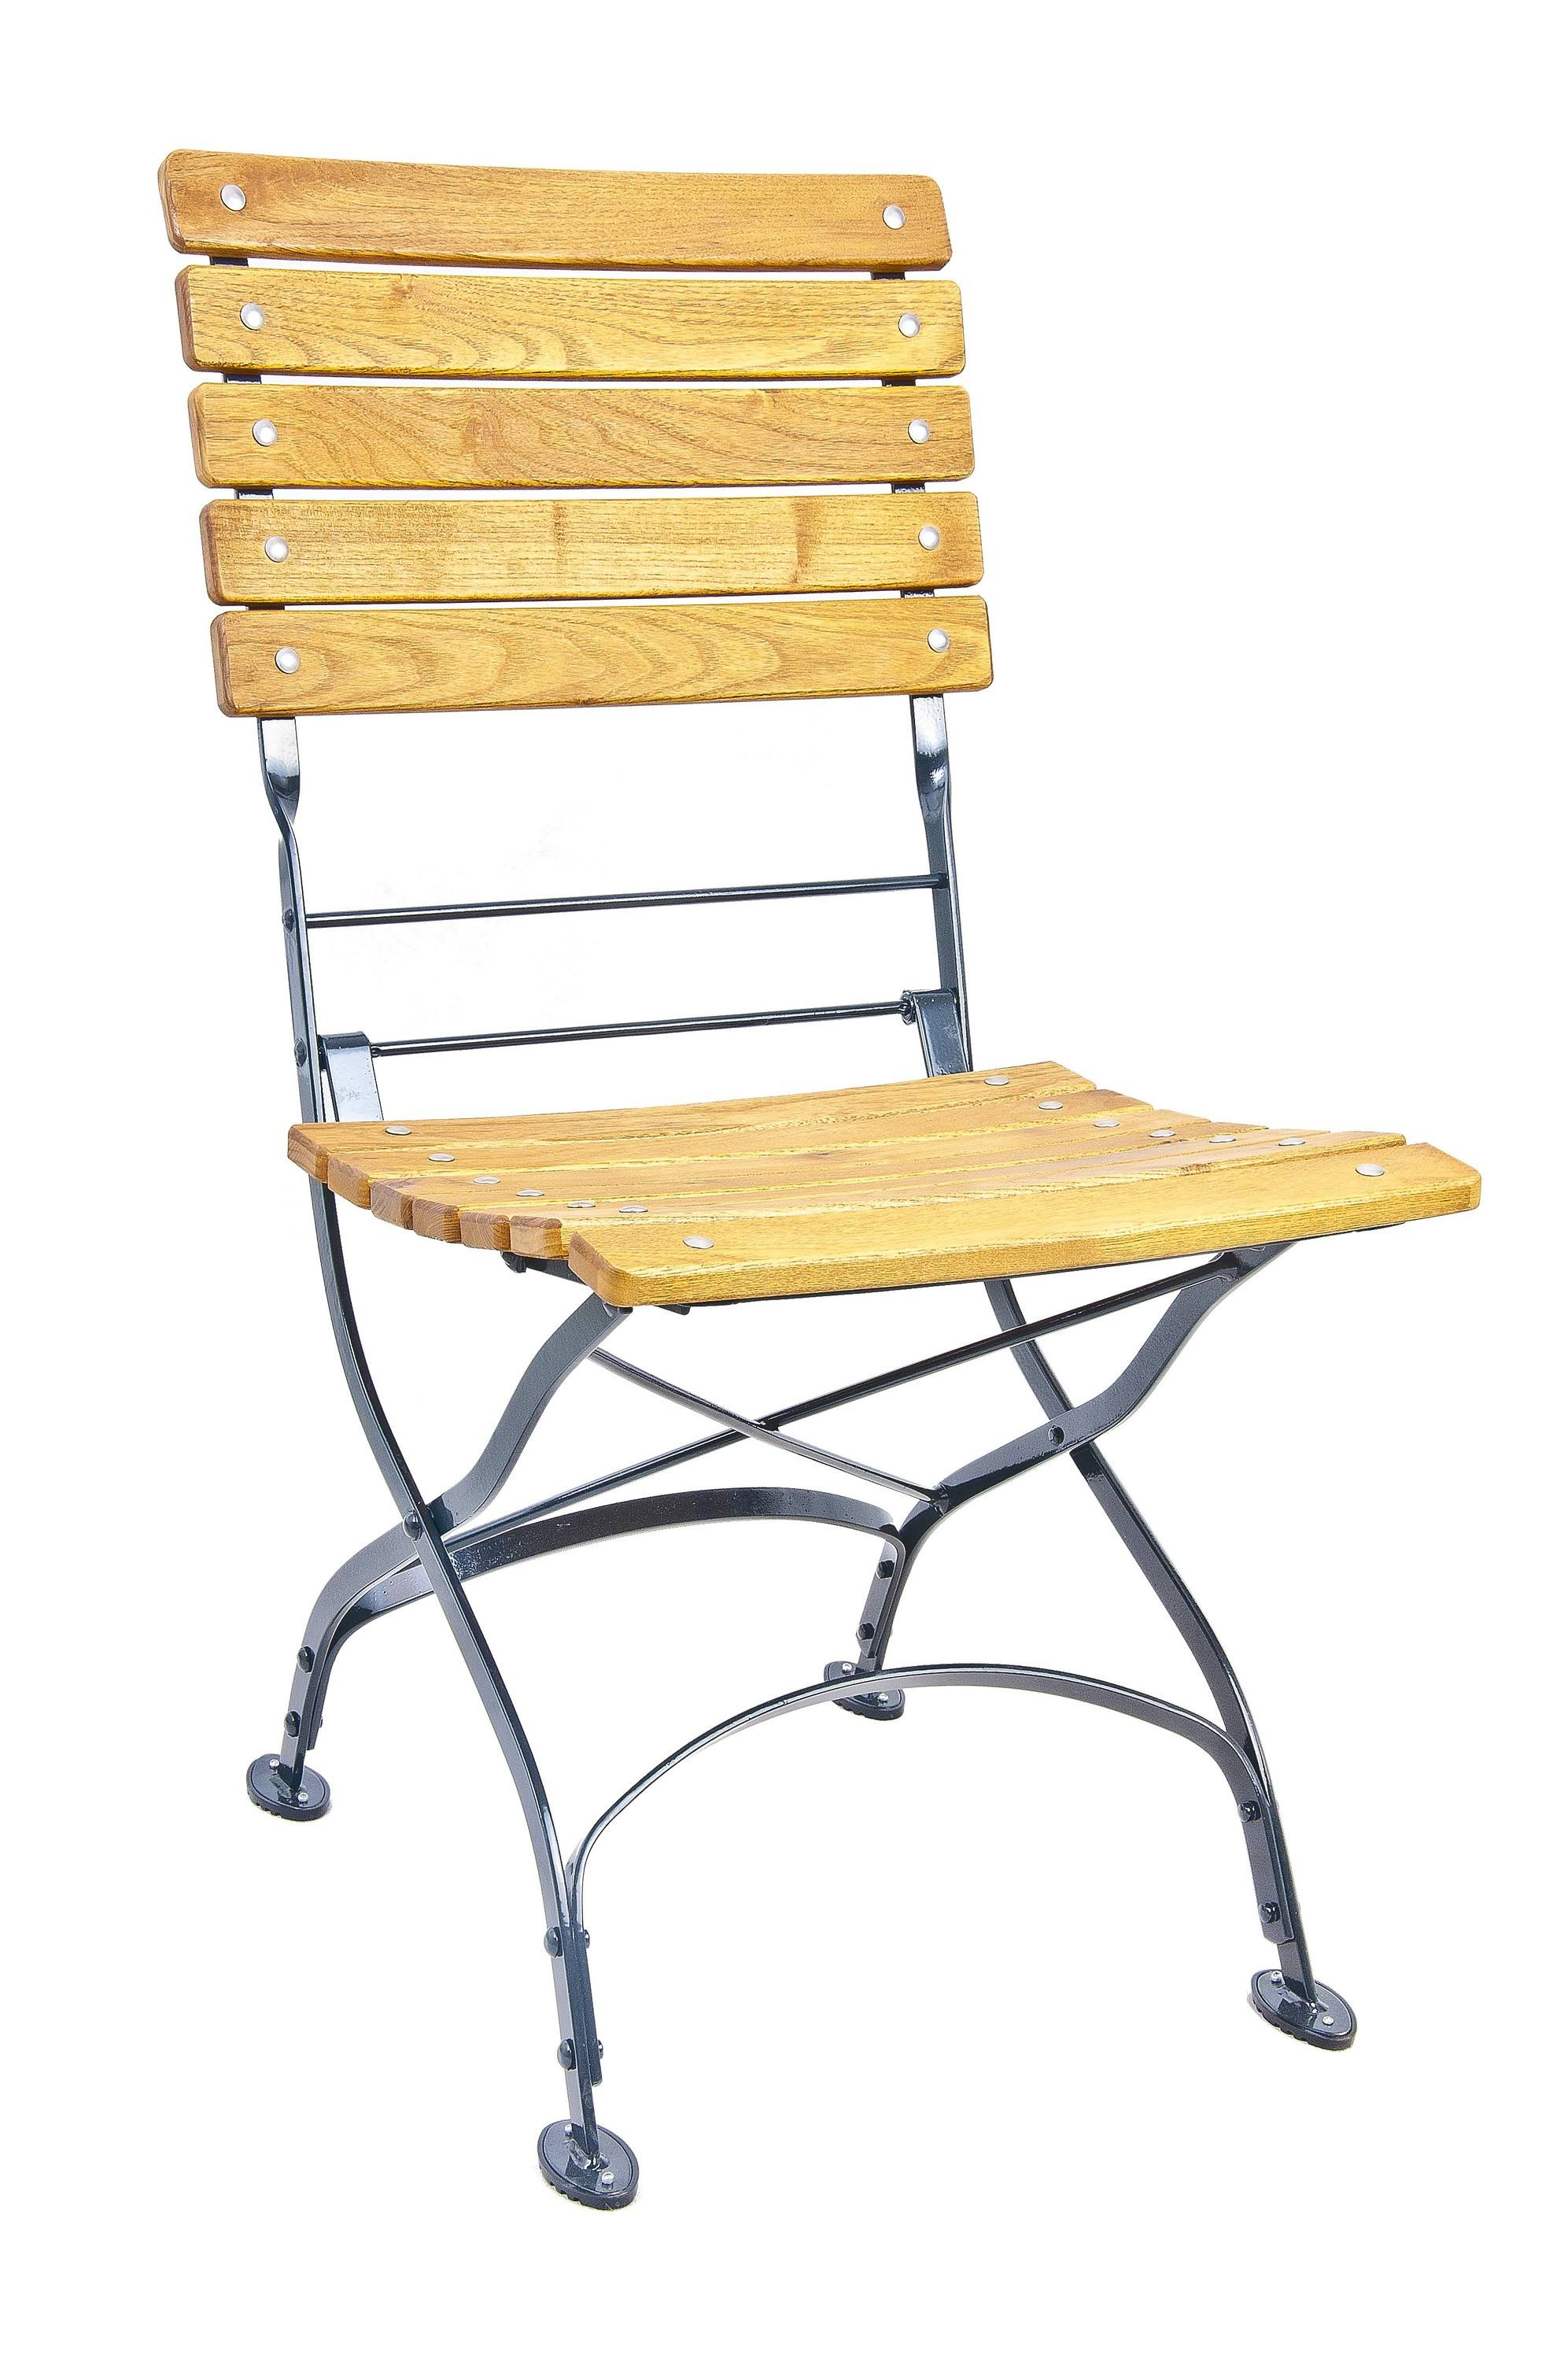 <p>Outdoor Furniture – Metal & Wooden Dining Collection – Oxford Chair.</p> <p> </p> <p>Oxford Furniture chair with light coloured slatted hardwood seat armrests and backrest with black frame.</p> <p> </p> <p>Ideally suited for either indoor or outdoor relaxed dining location or more intimate café bistro al fresco area or for events requiring easy to fold and store furniture.</p>